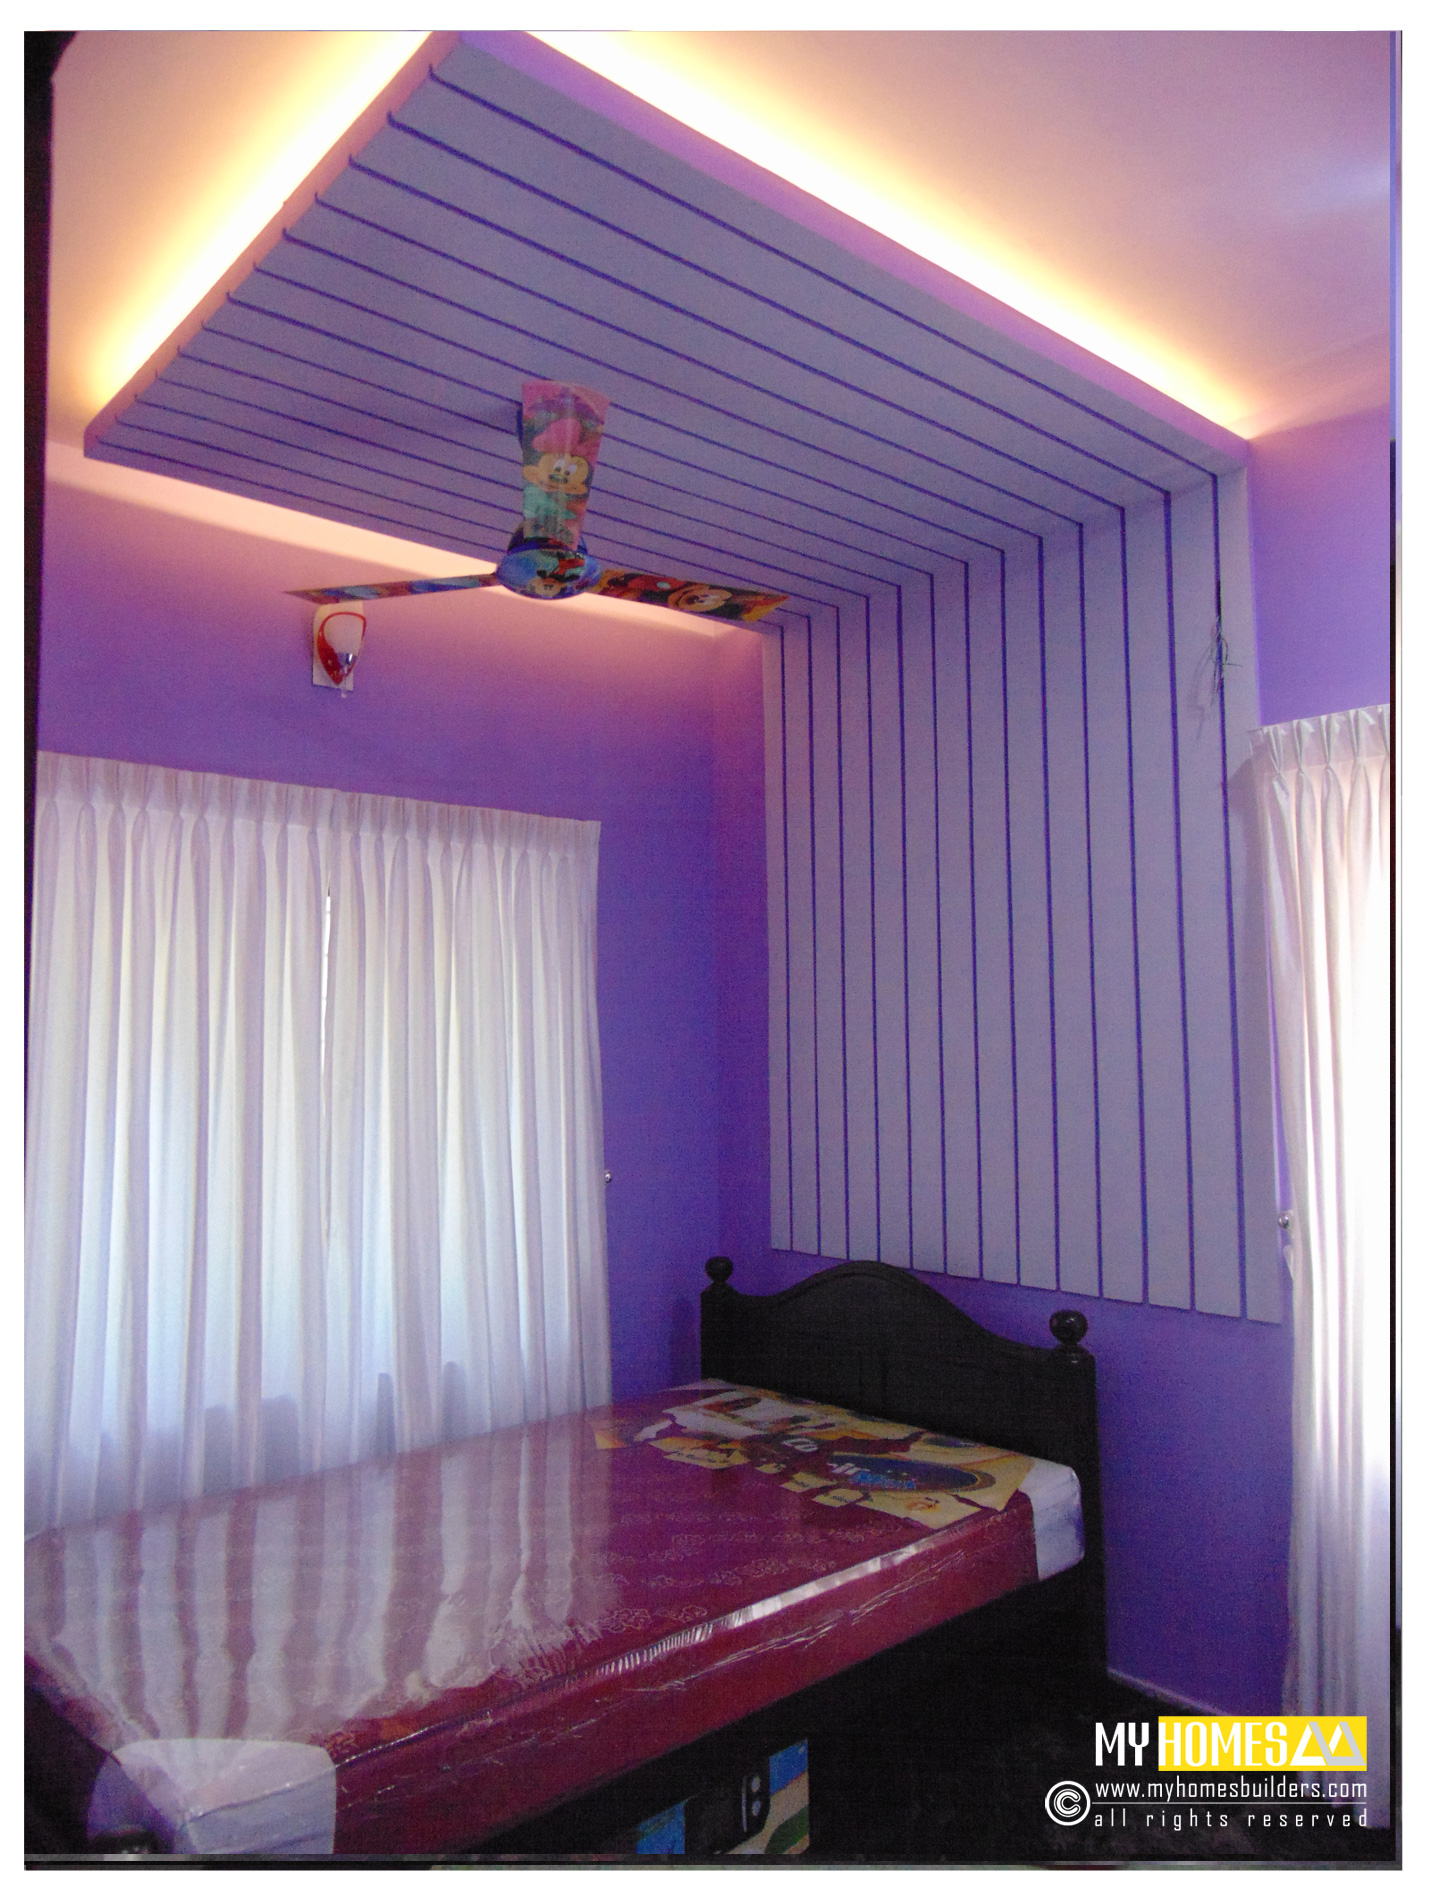 Simple style interior ideal kids bedroom designs in kerala for Latest interior design ideas